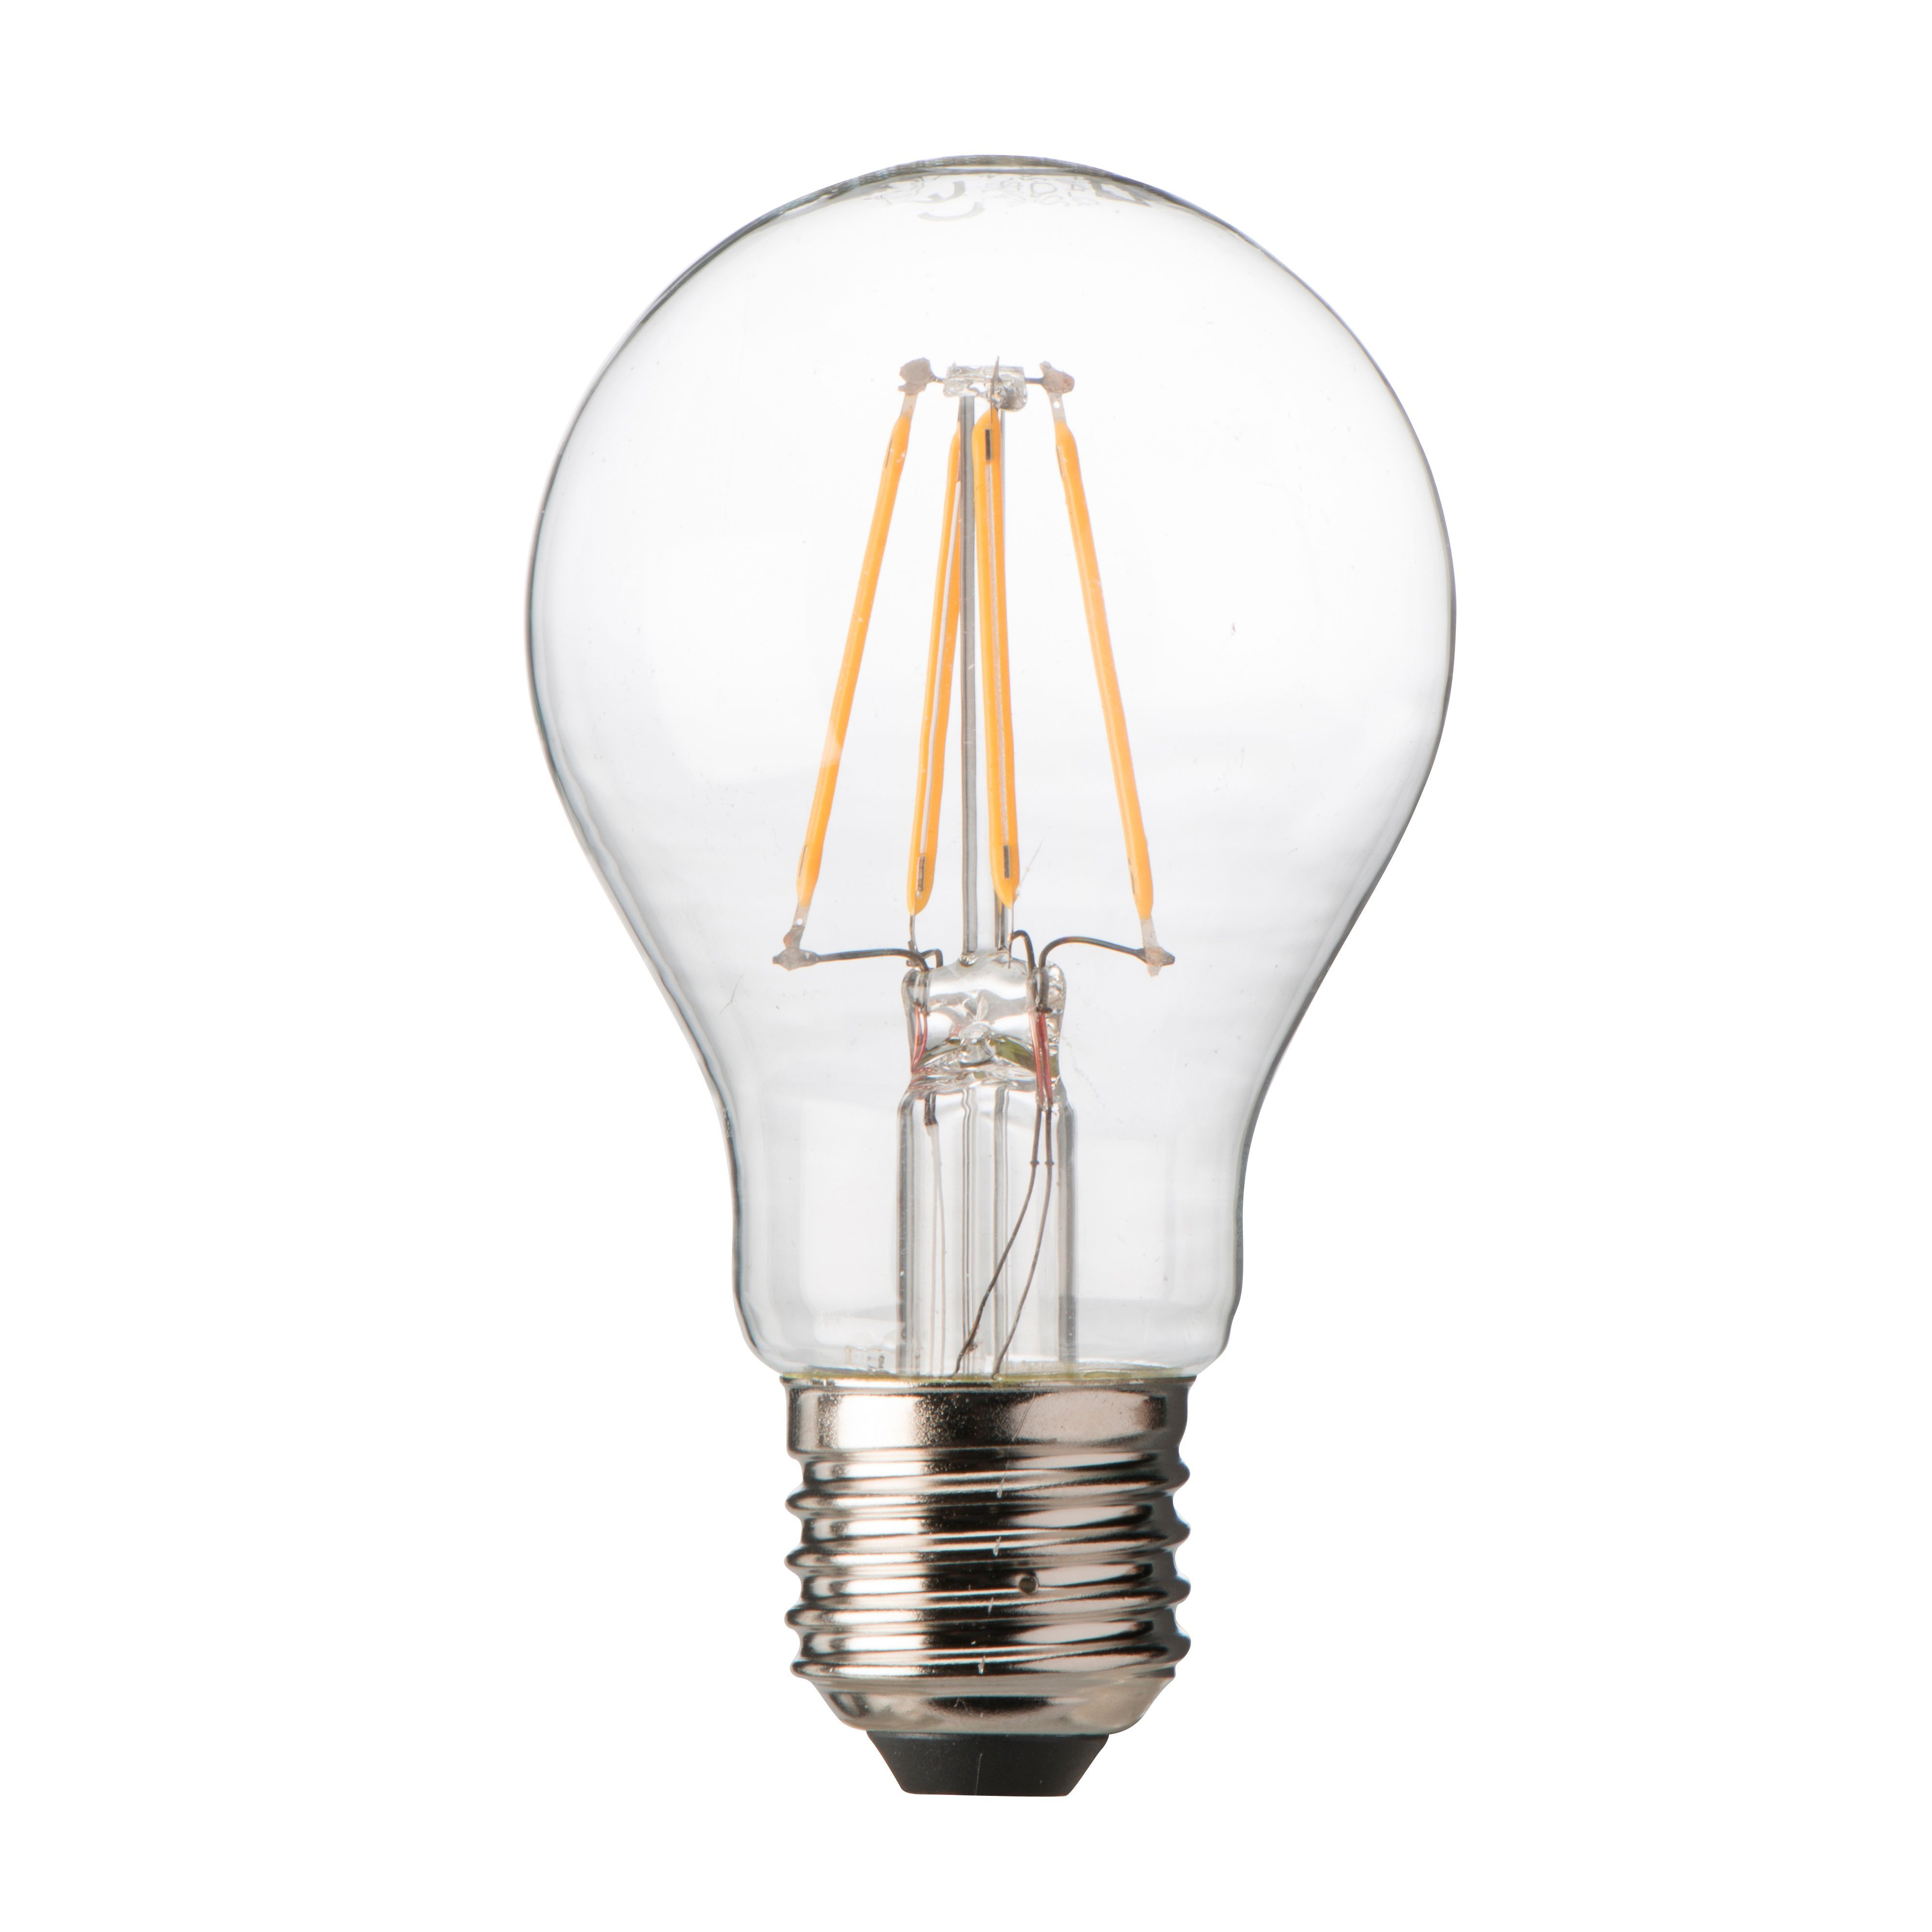 Diall E27 7.5W LED Filament Dimmable Classic Light Bulb